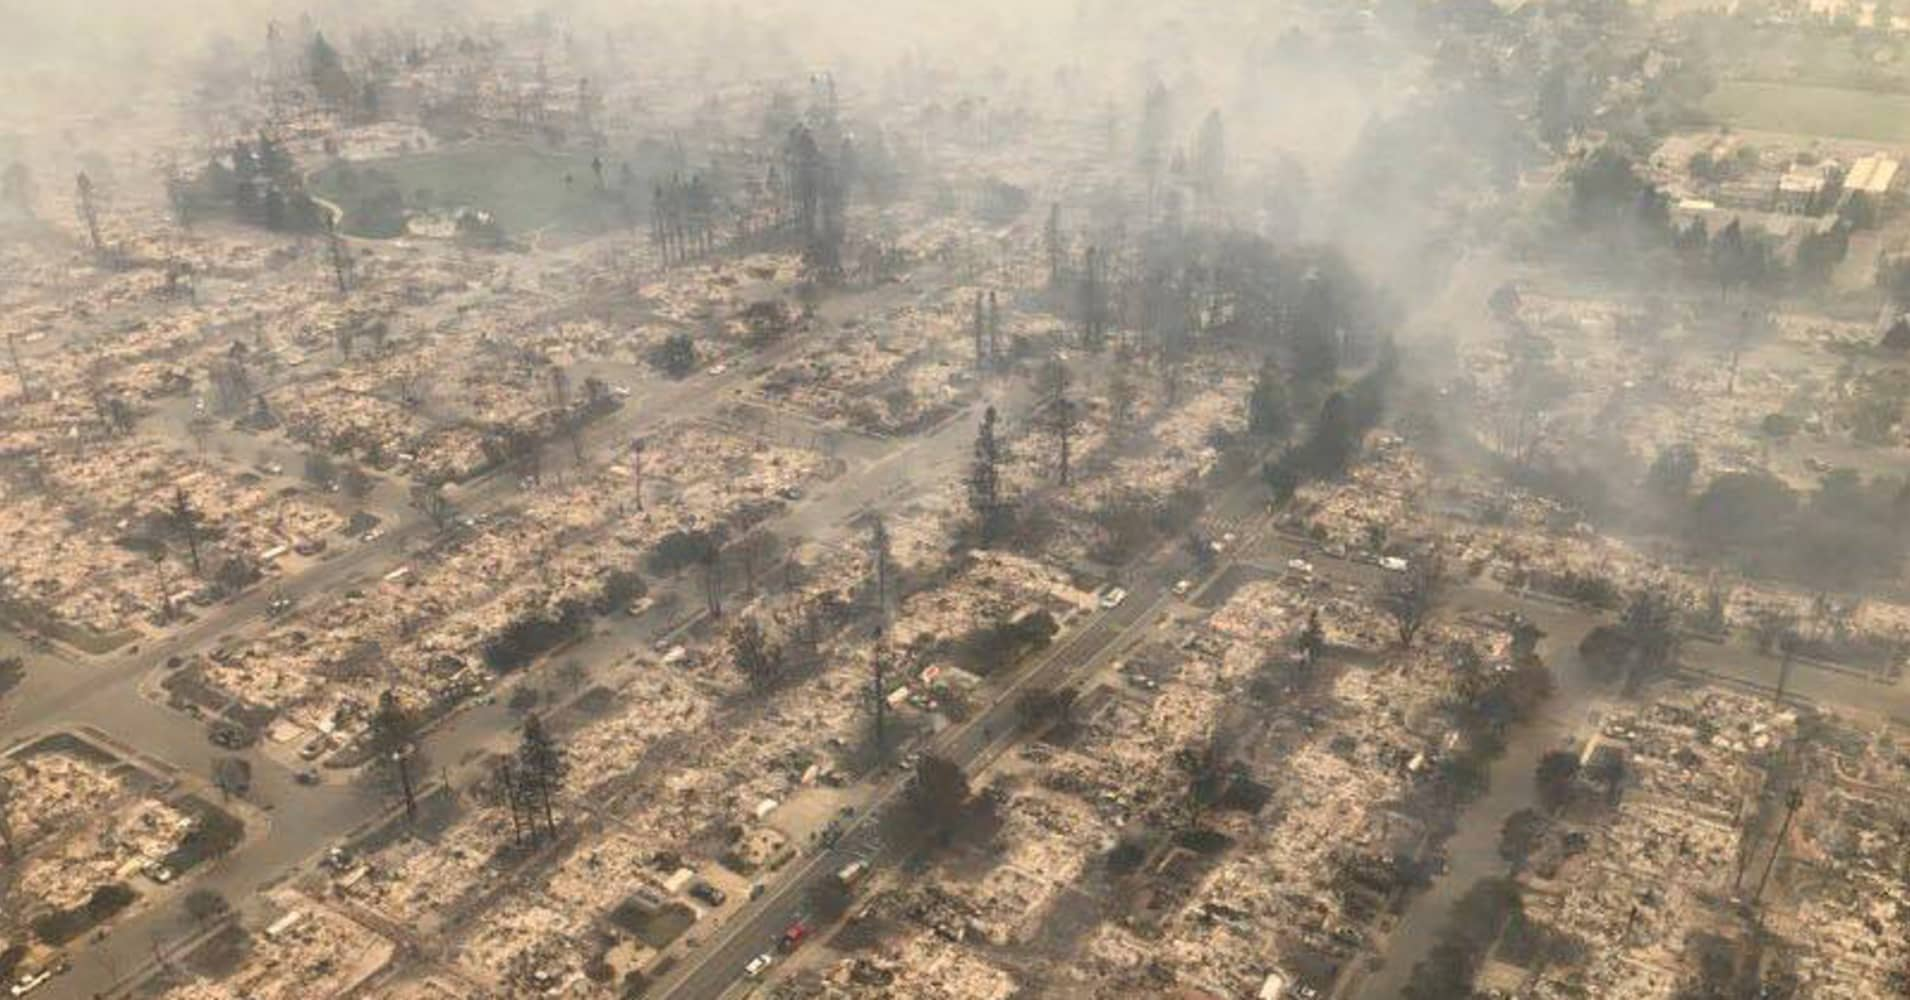 An aerial photo of the devastation left behind from the North Bay wildfires north of San Francisco.